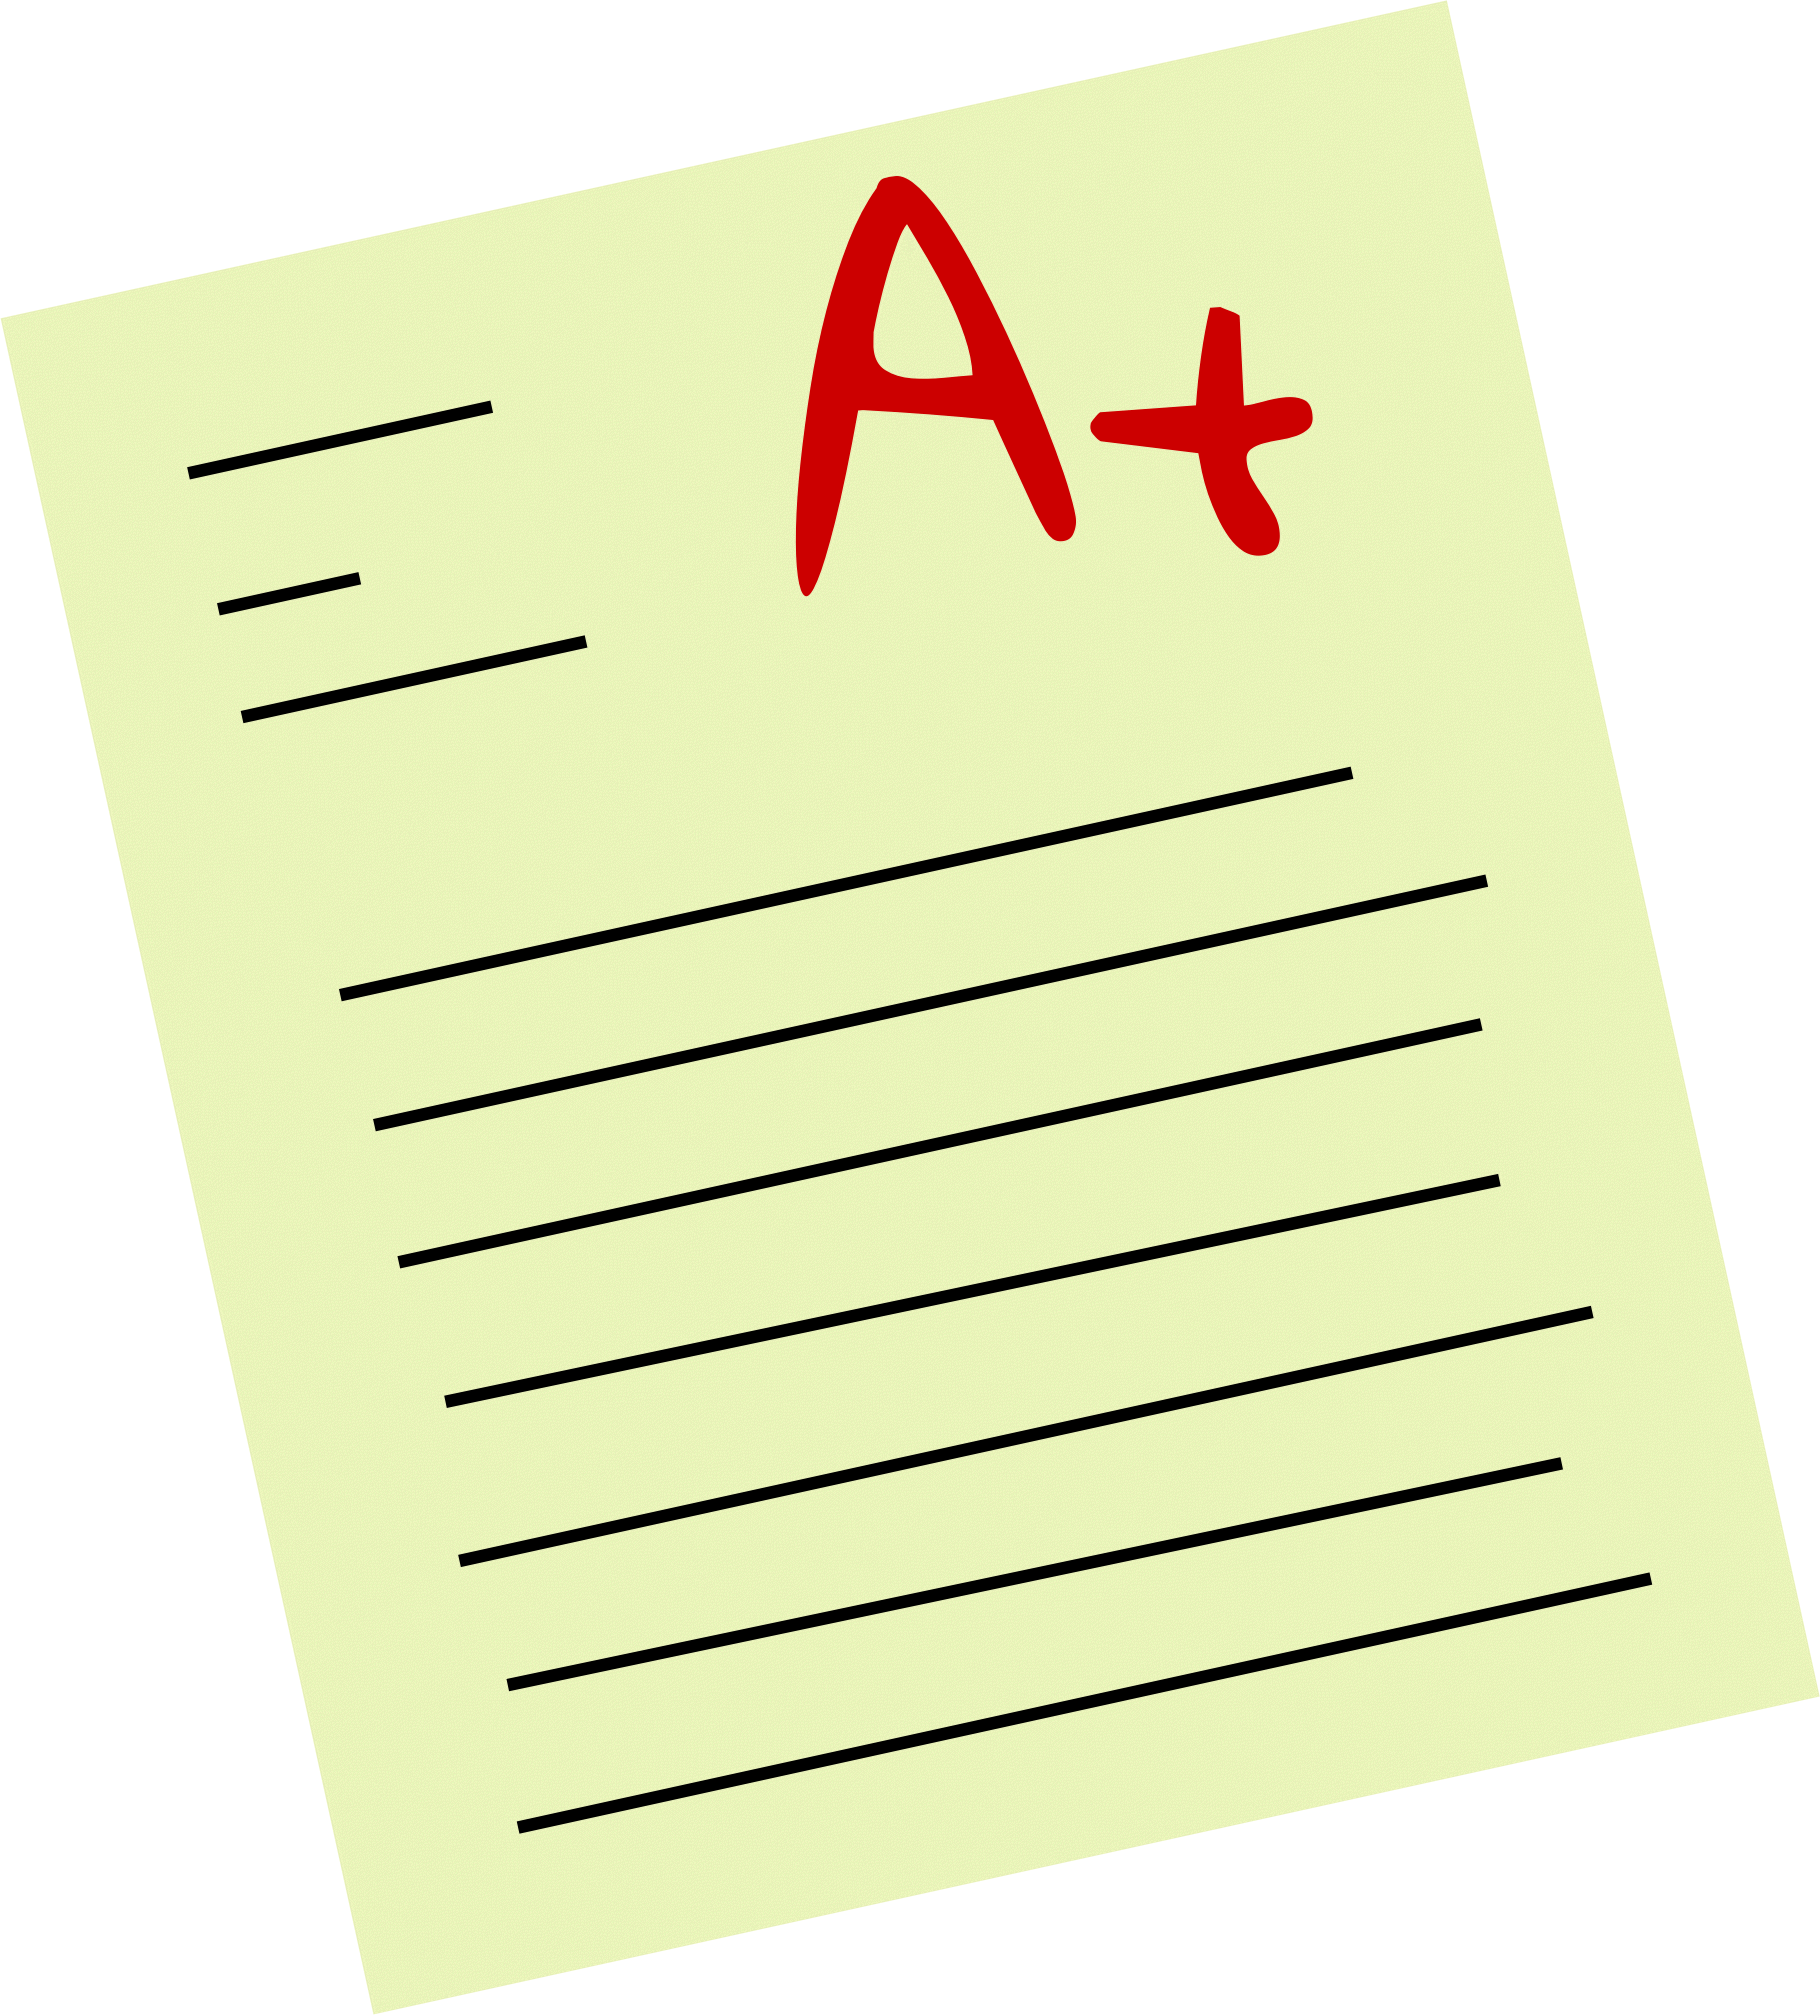 Free Test Paper Cliparts, Download Free Clip Art, Free Clip.